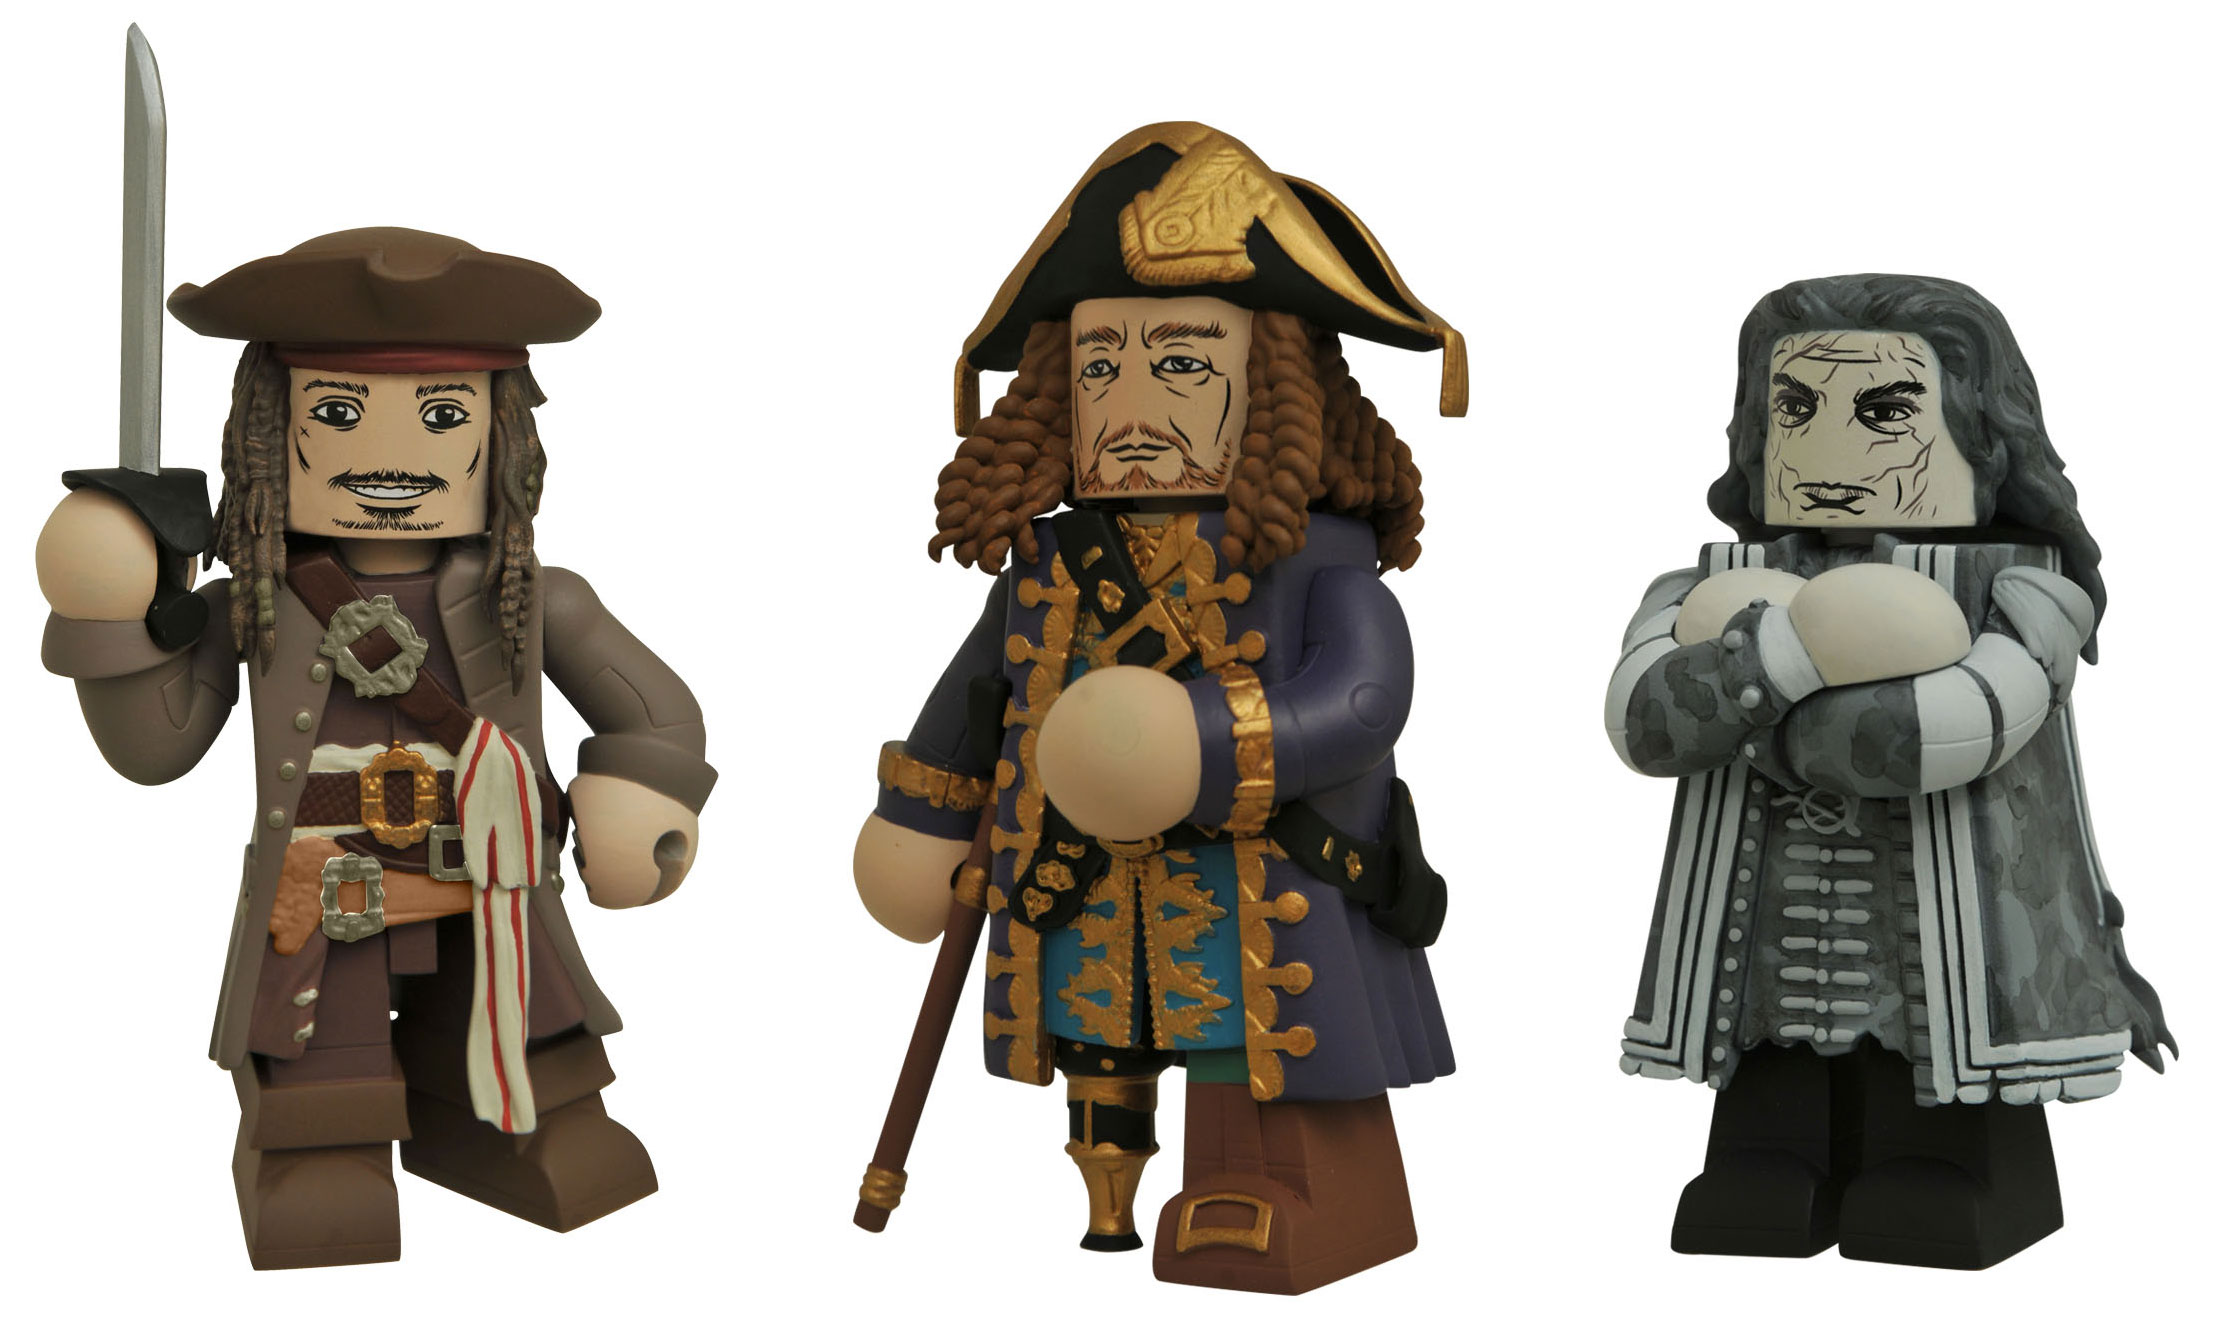 pirates-of-the-caribbean-vinimates-figures